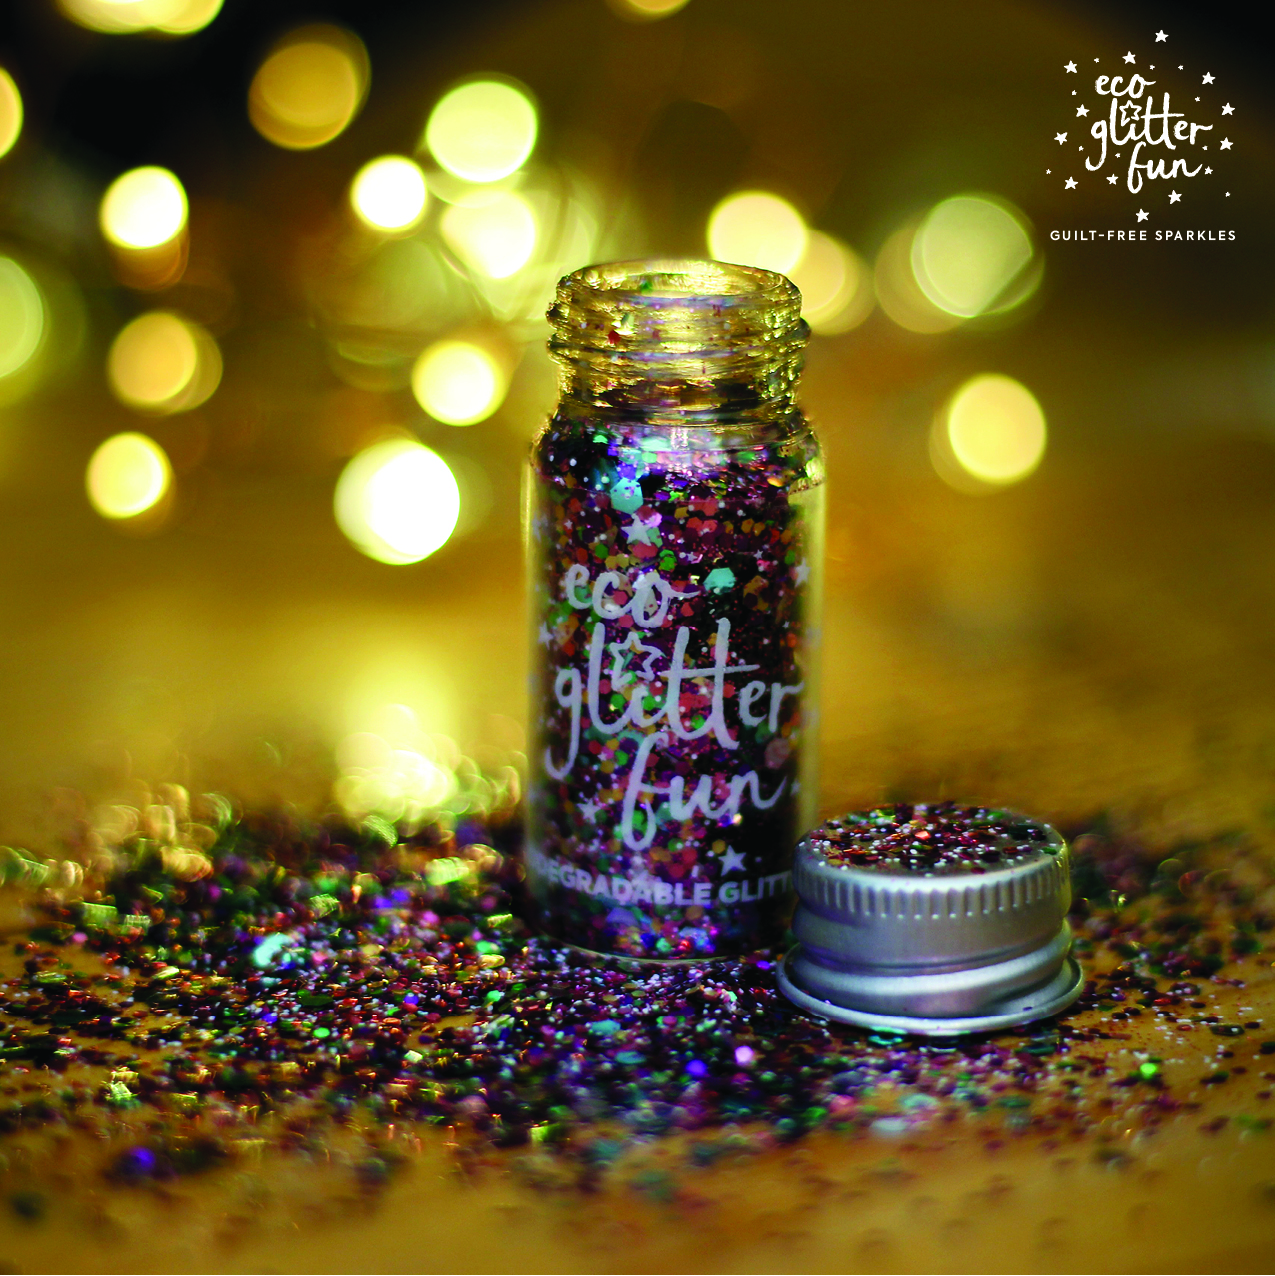 Eco Glitter Fun biodegradable glitter